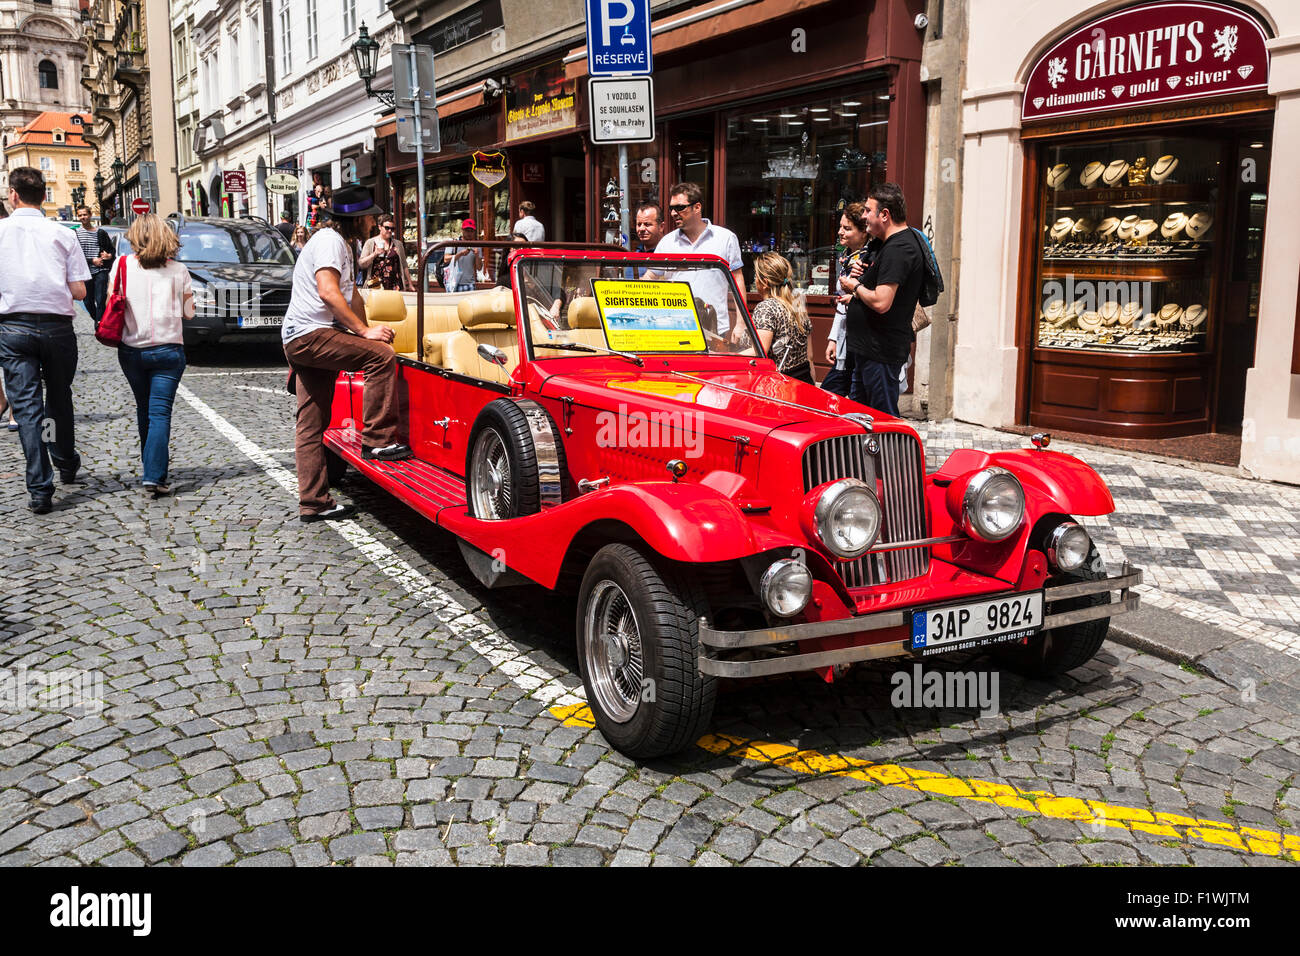 Retro style car used for tourist sightseeing excursions, Prague Cezch Republic. - Stock Image